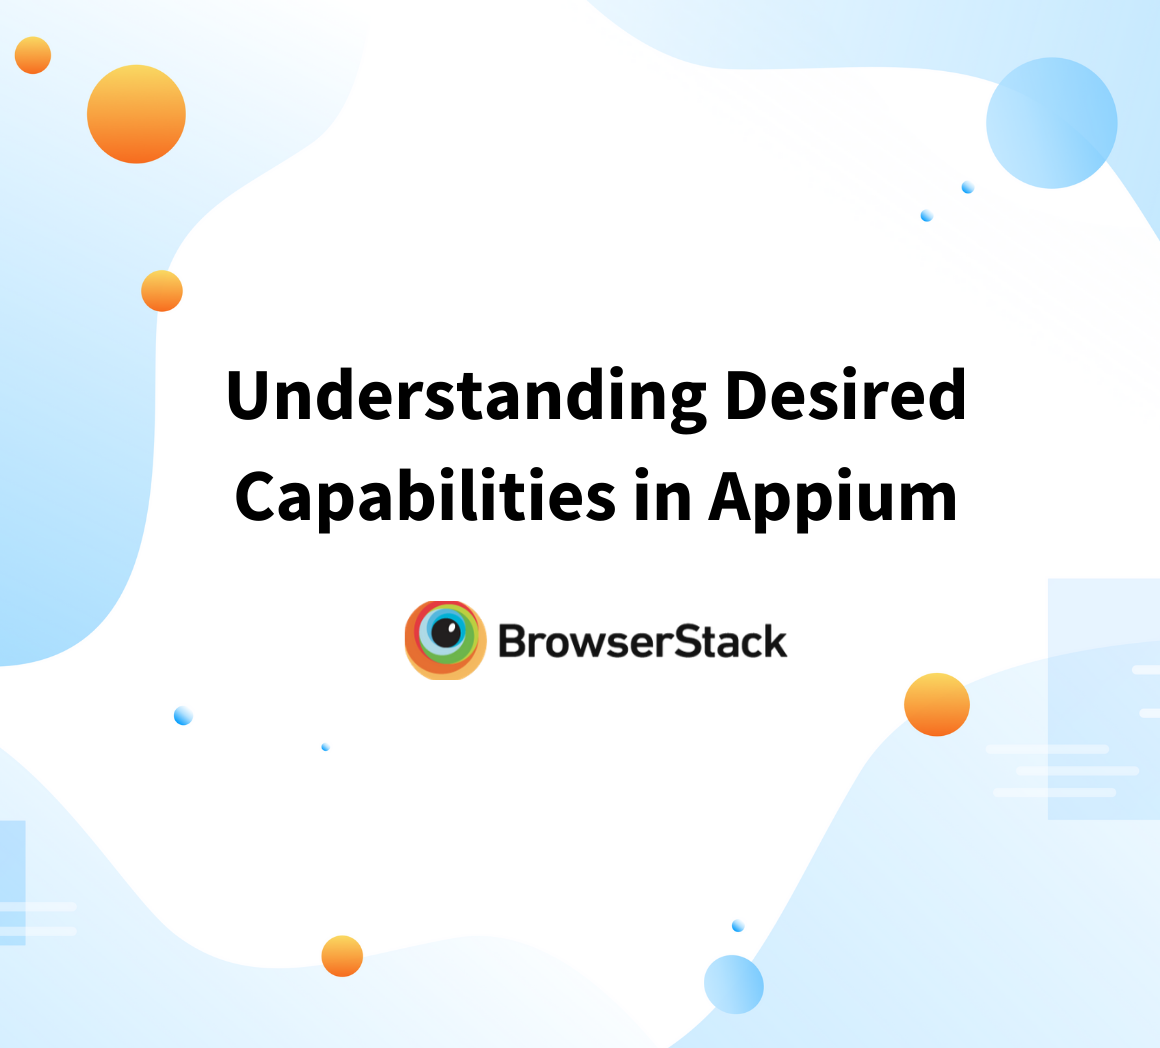 Understanding Desired Capabilities in Appium